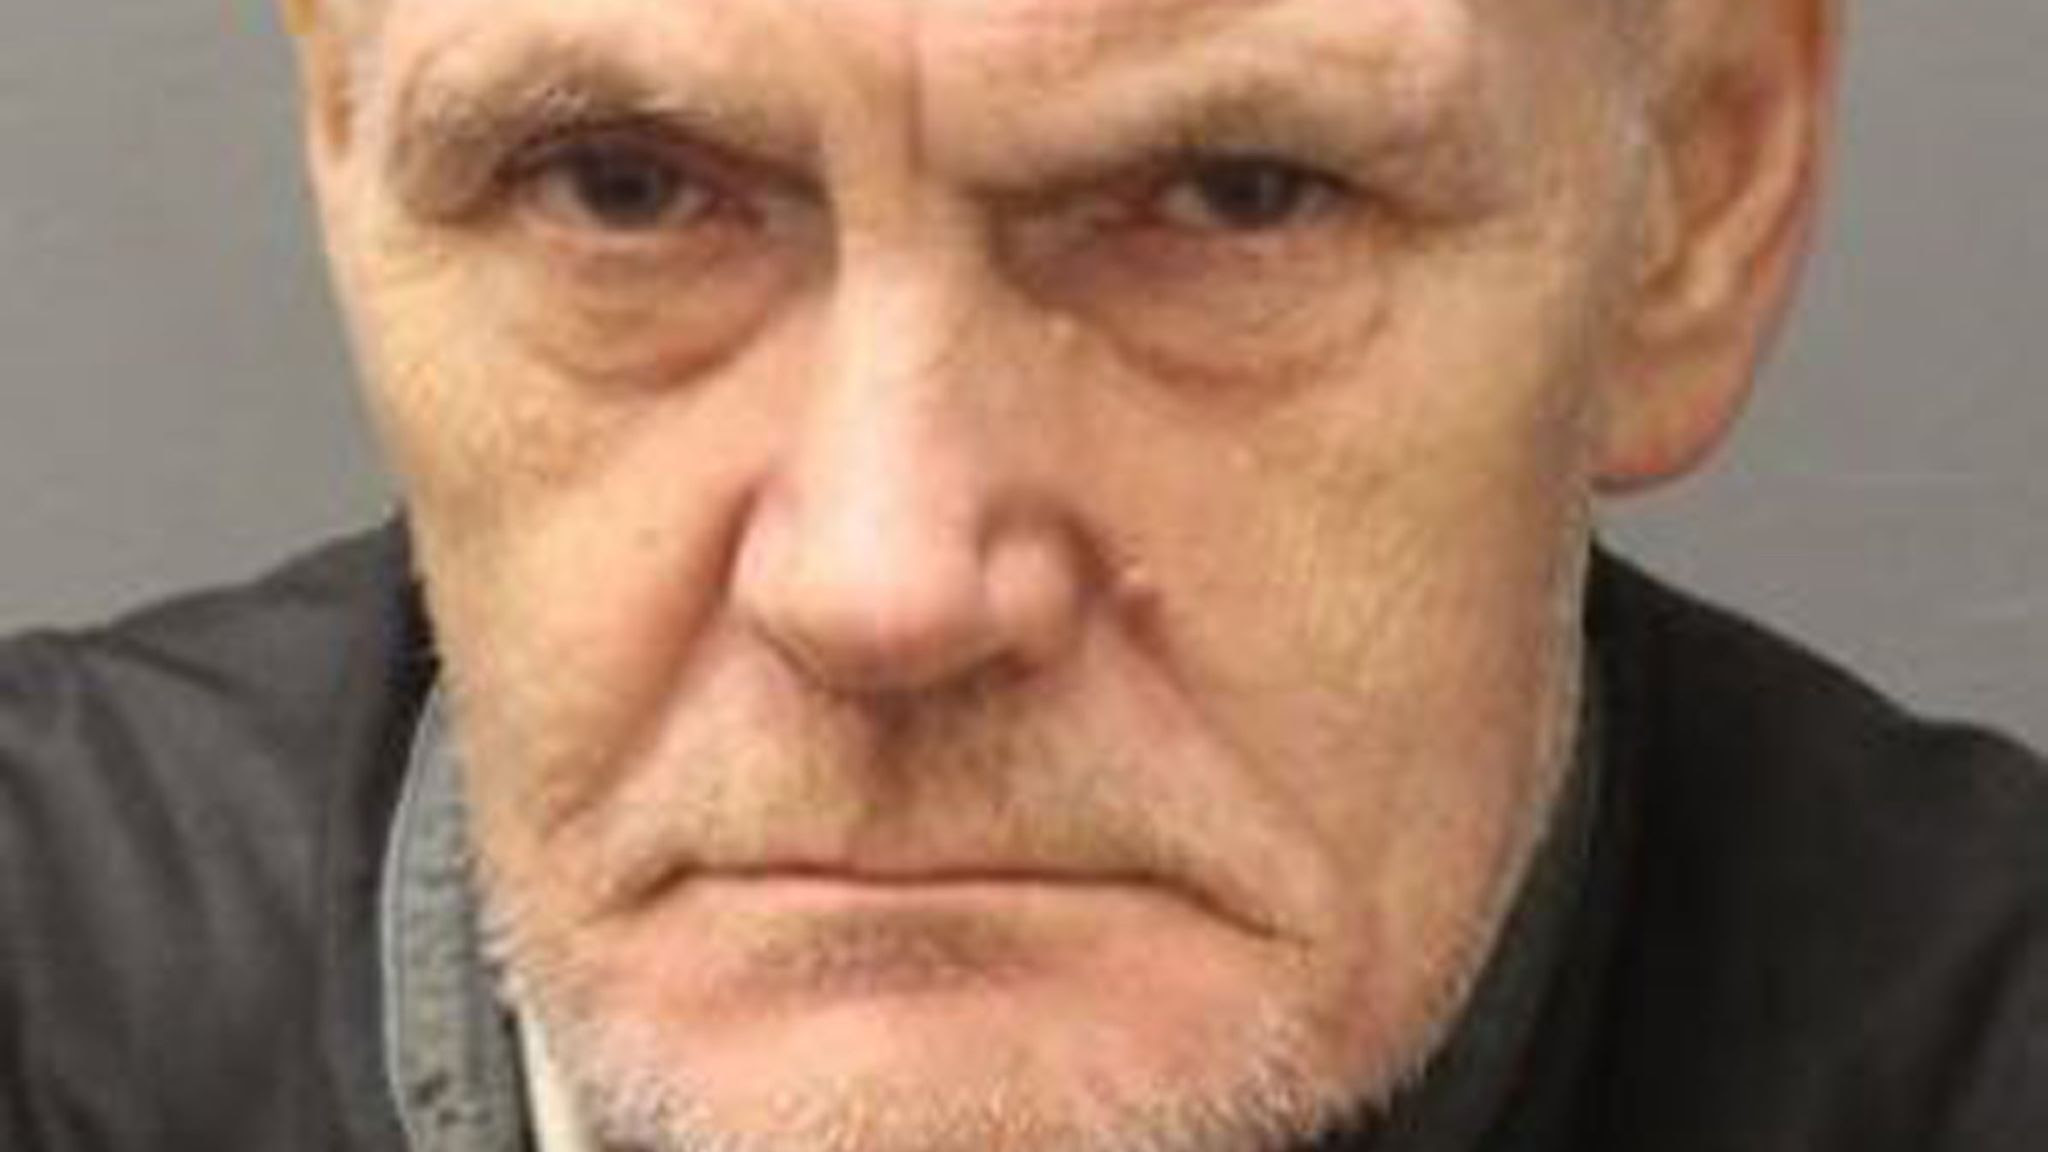 Anthony Kemp: Homeless man who confessed to 1983 murder to 'get looked after' is jailed for life